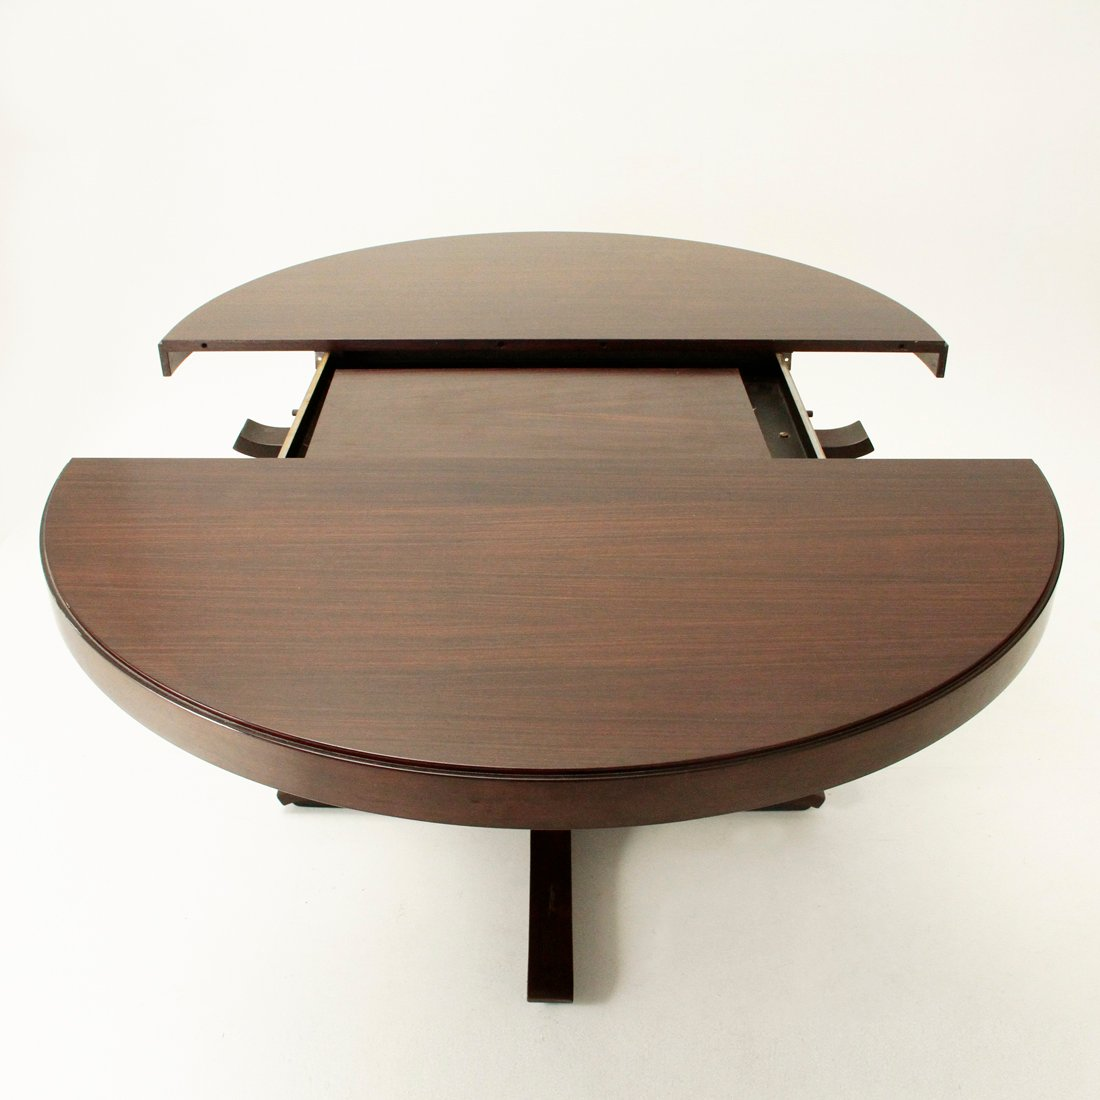 Extensible dining table by giovanni ausenda for stilwood for Table extensible toscana